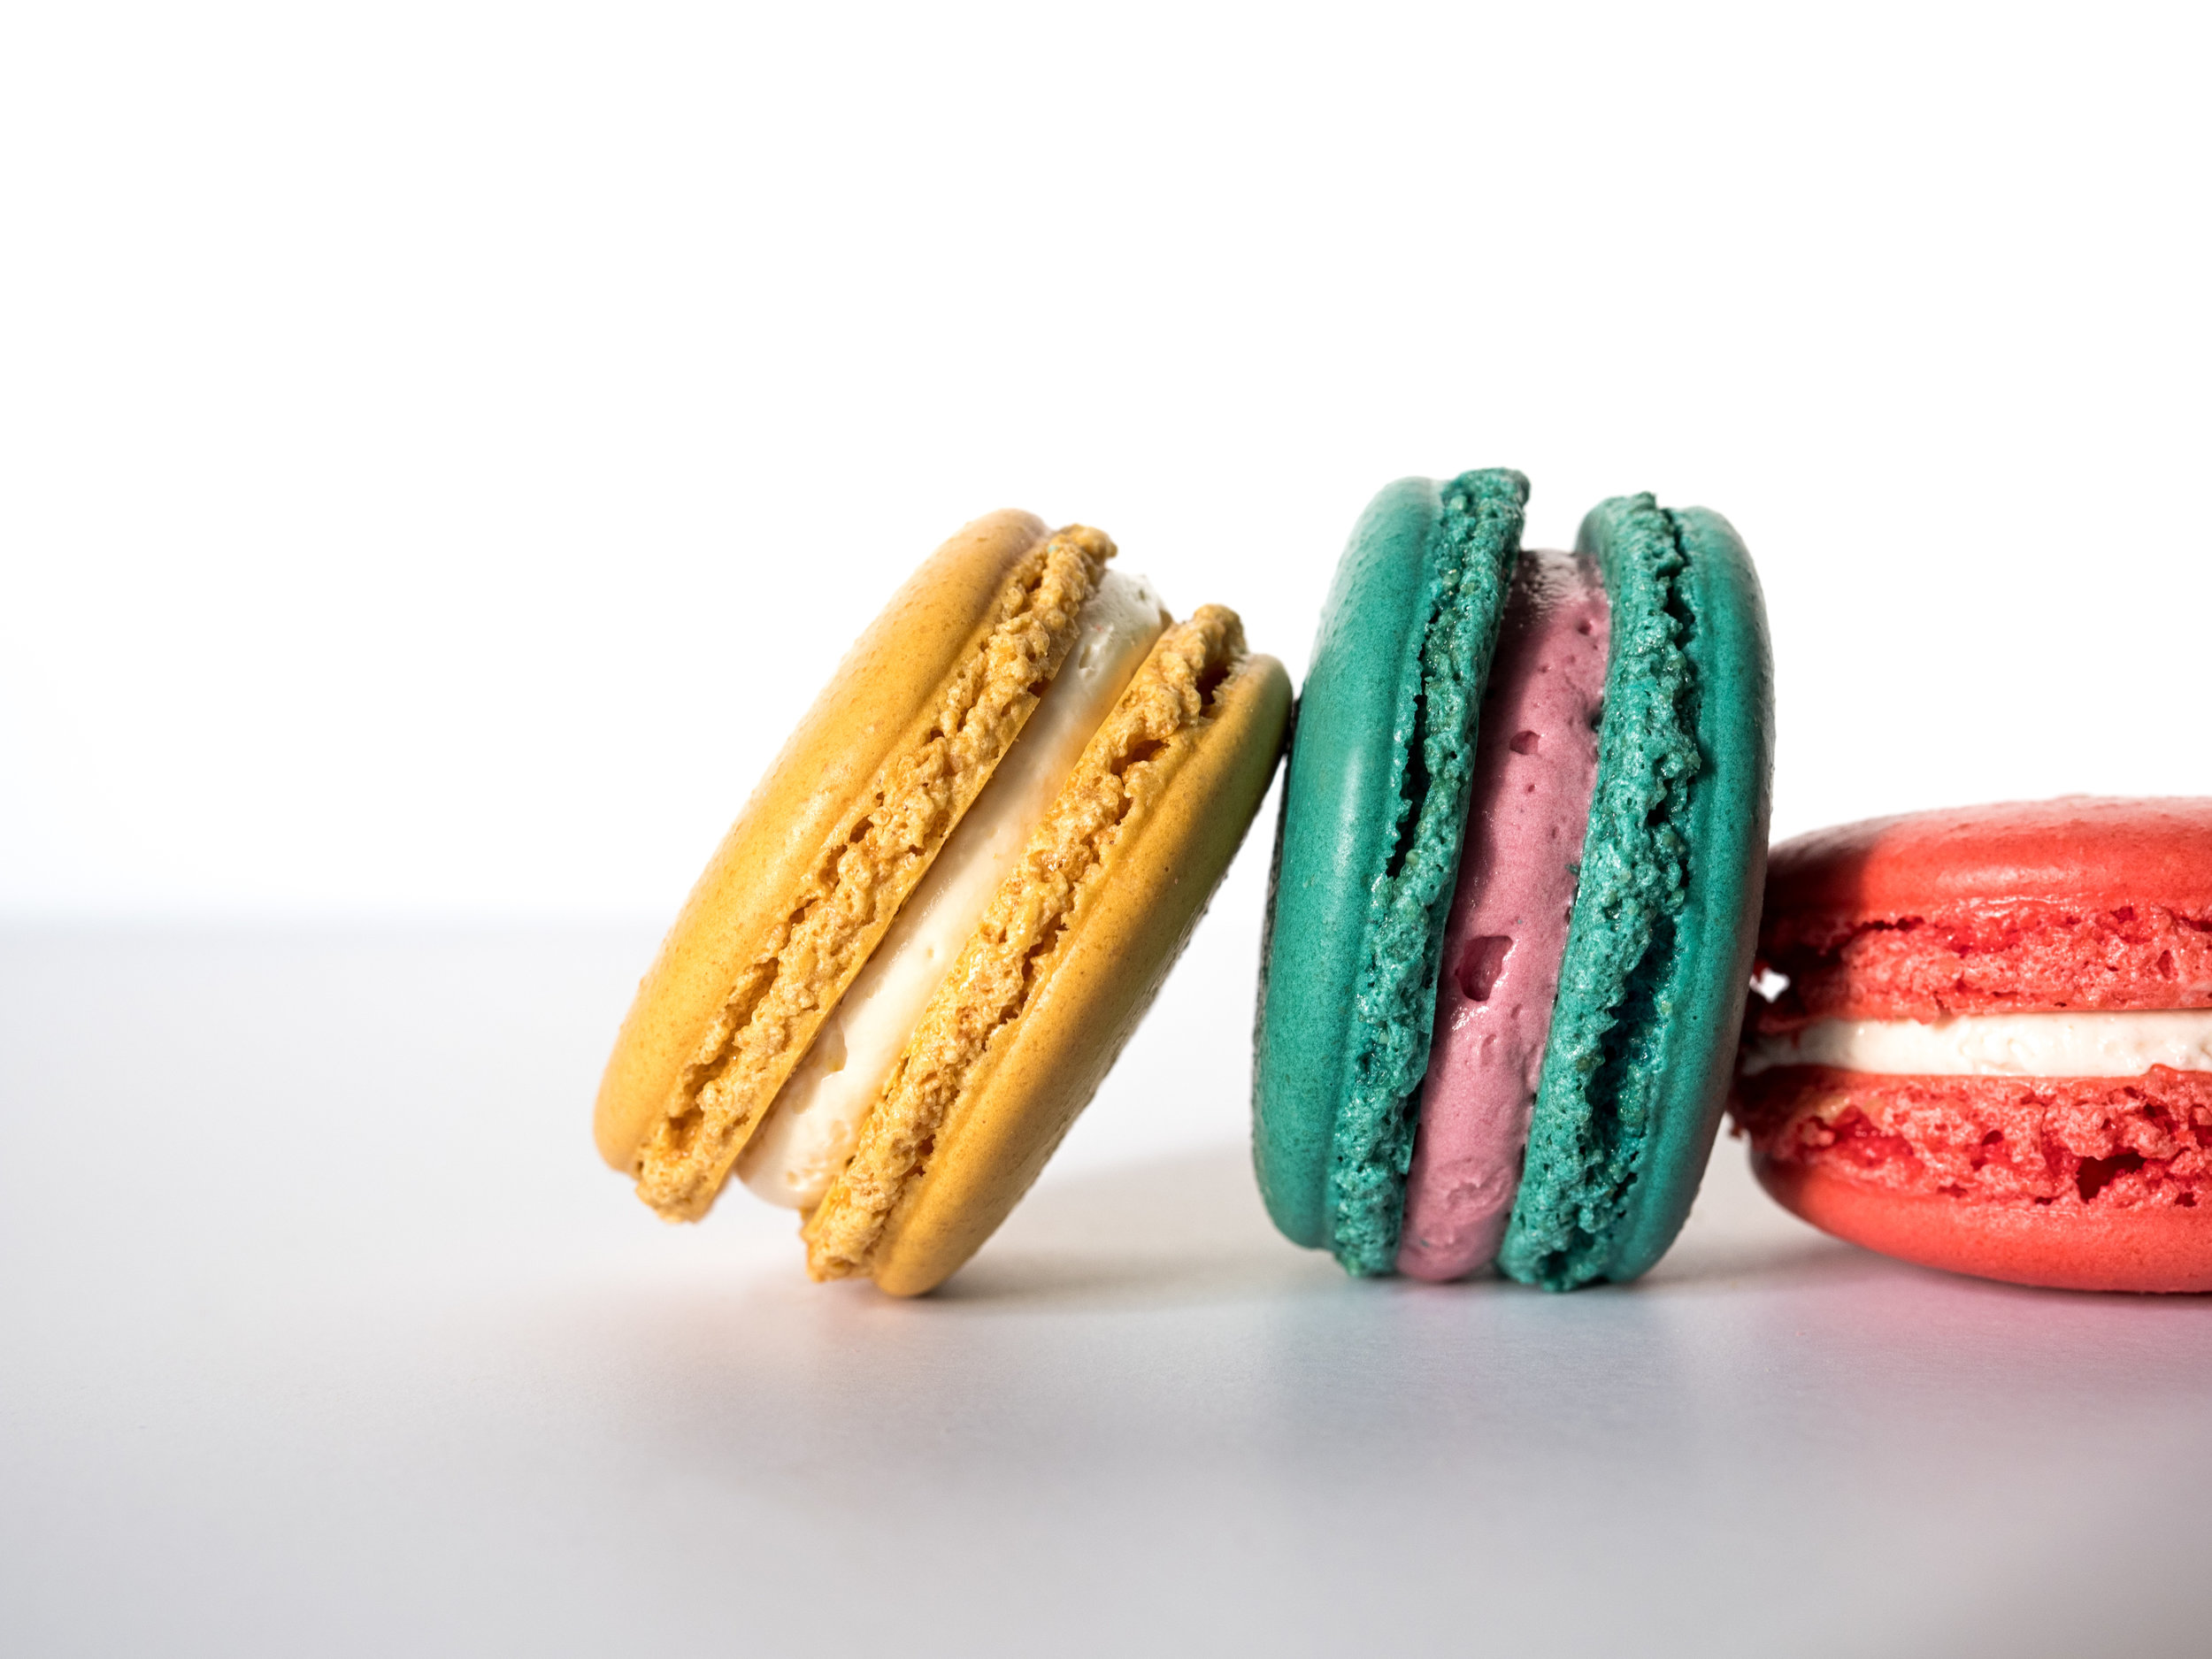 Musings by the Glass - Sake-Confection Hypothesis - Macarons